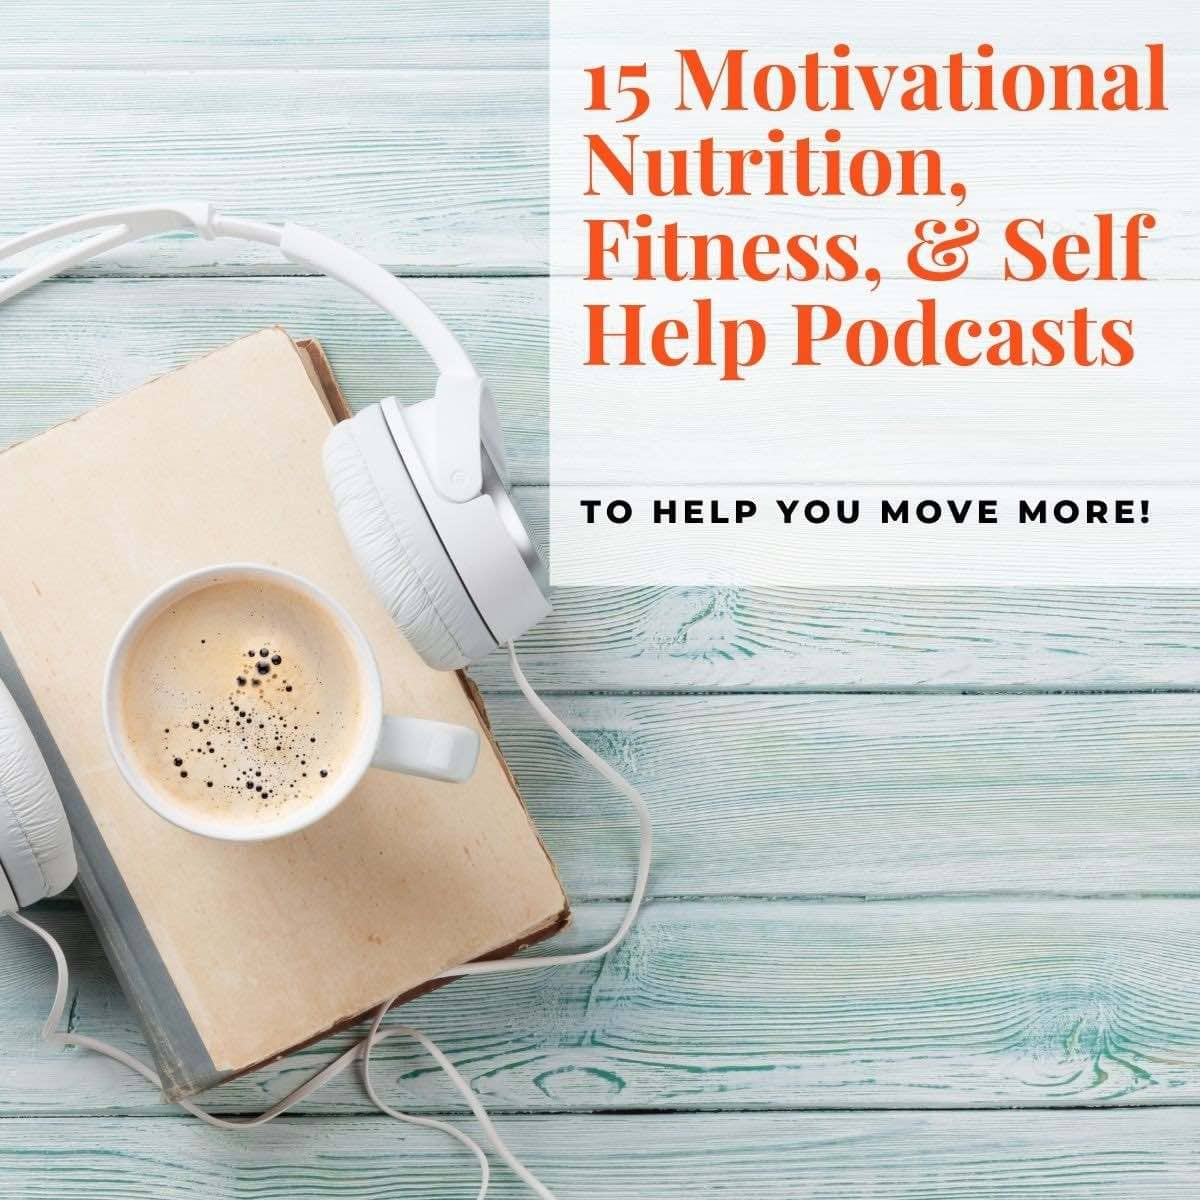 Headphones and mobile phone with text: 15 Motivational Nutrition, Fitness, and Self Help Podcasts to Help You Move More.